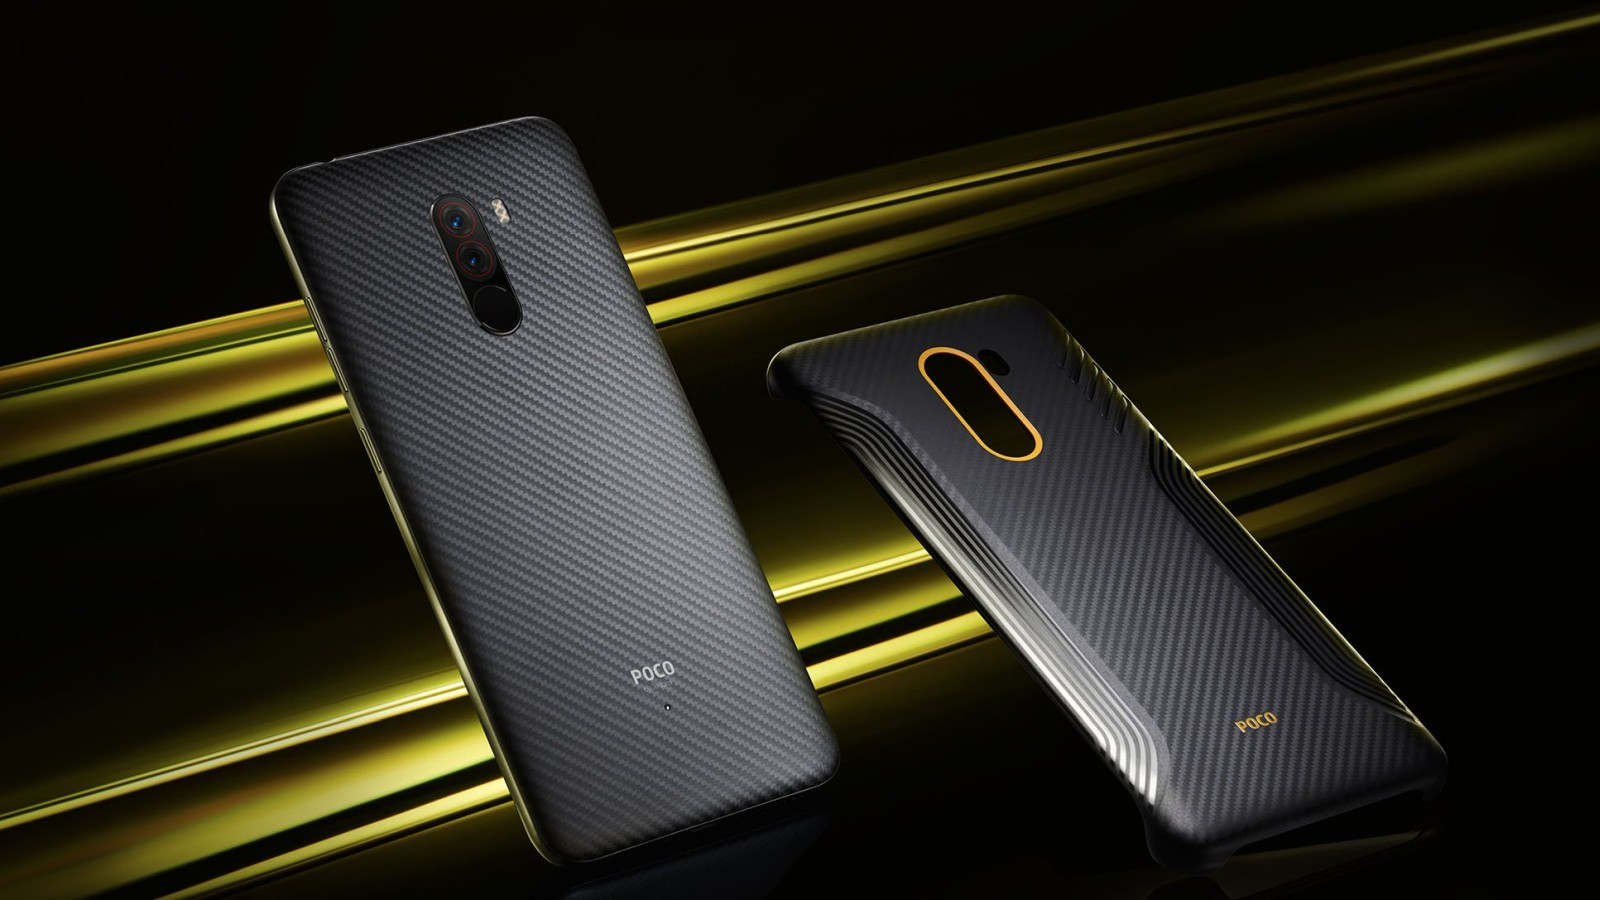 Fix Xiaomi Poco F1 WiFi Connection Problem With Internet (Issue Solved)